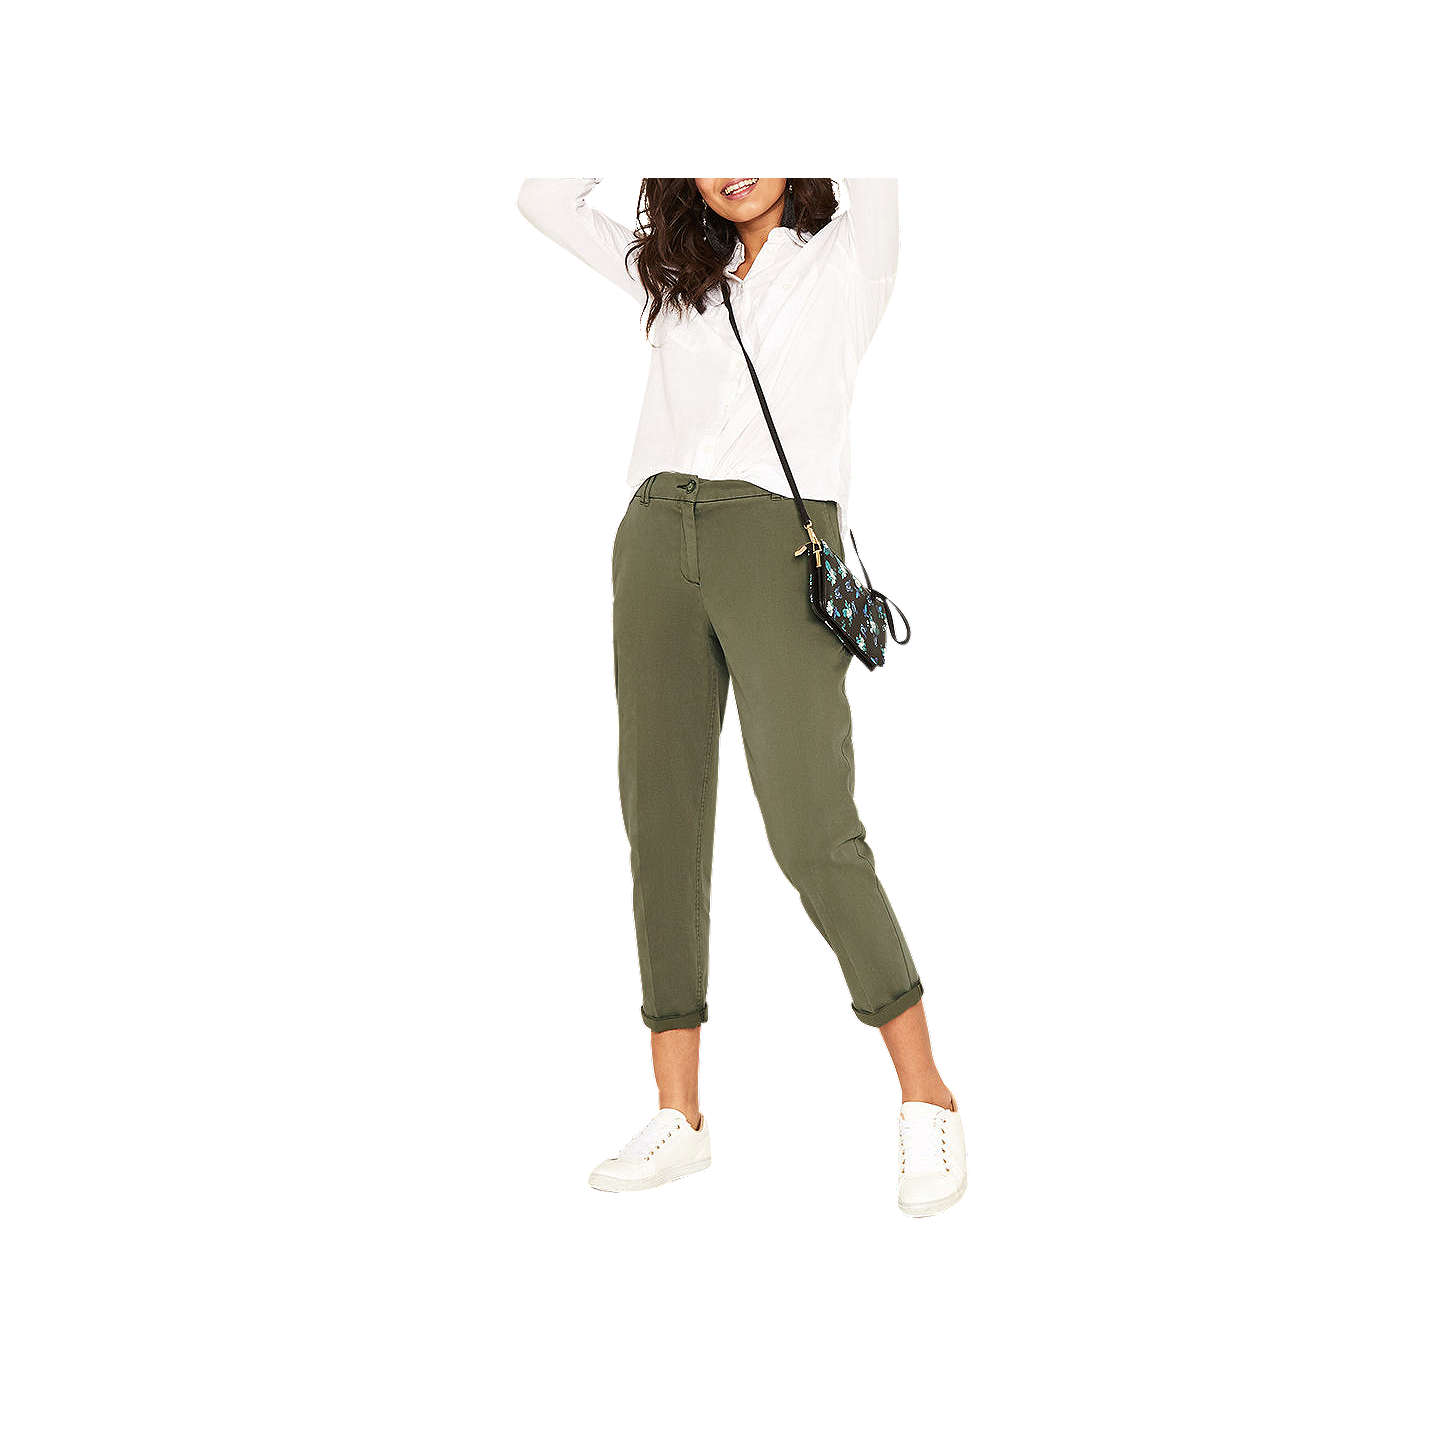 BuyOasis Casual Cotton Chinos, Khaki, 6 Online at johnlewis.com